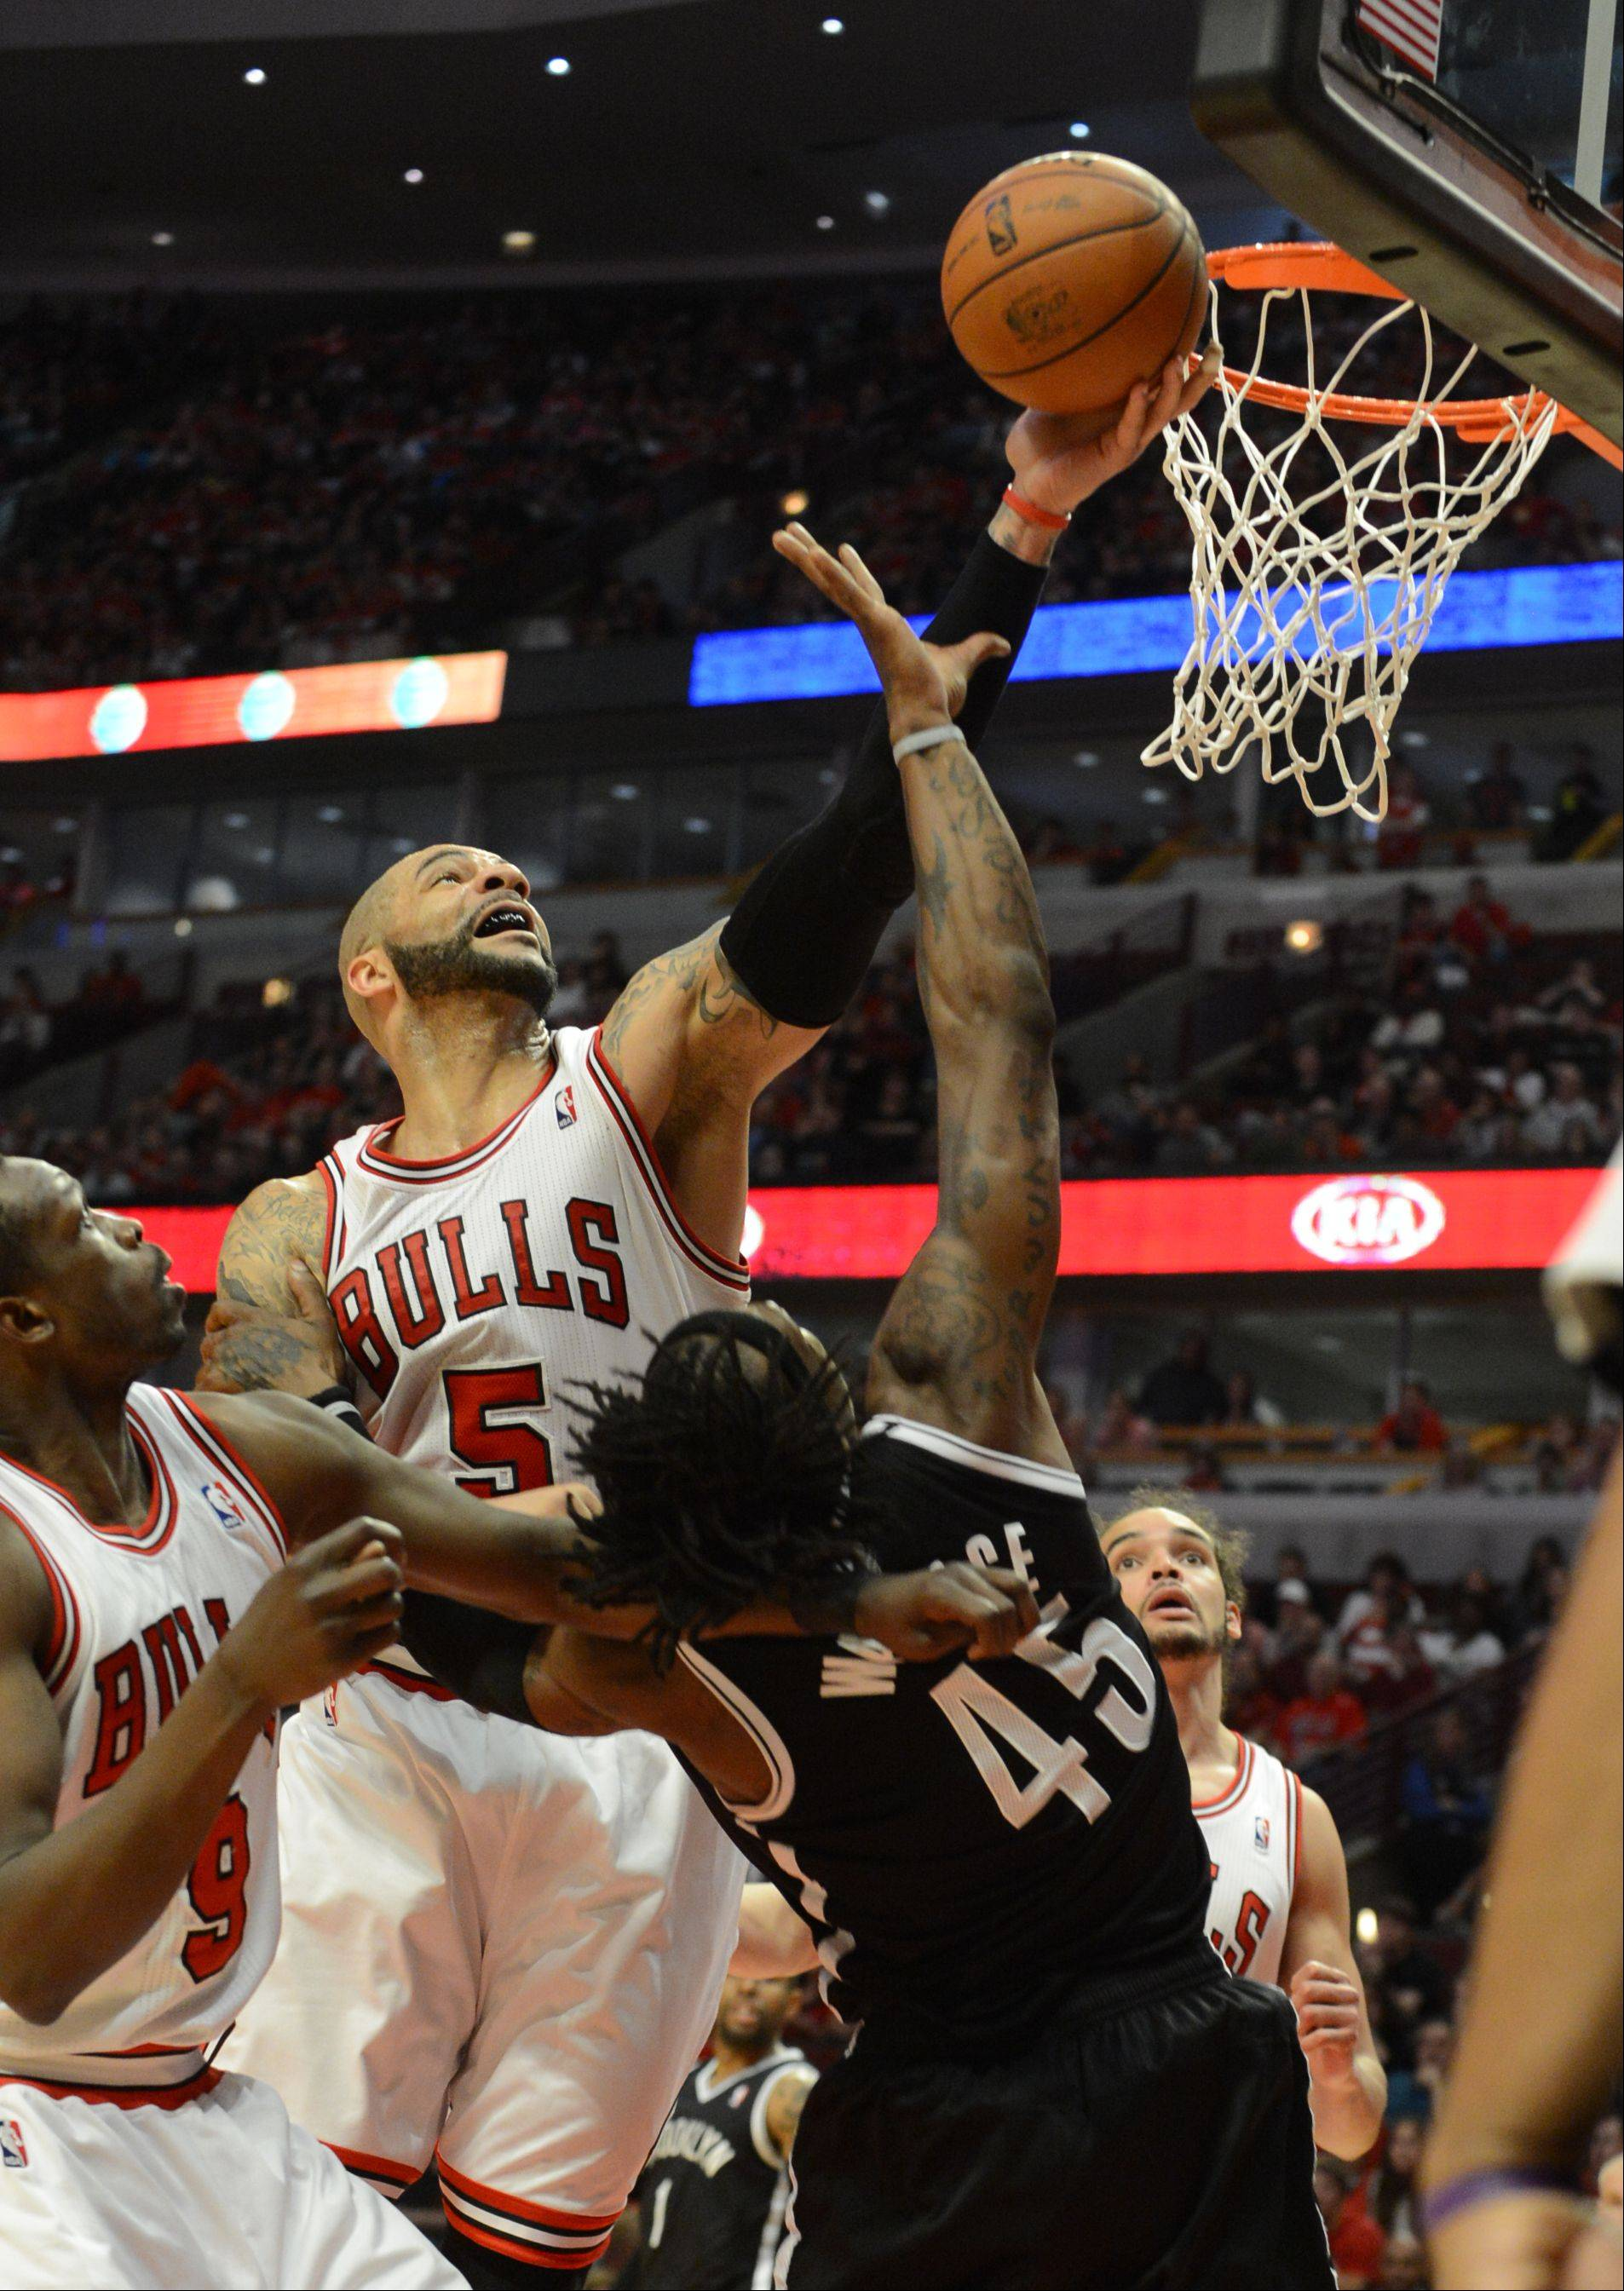 The Bulls Carlos Boozer blocks a shot by Brooklyn's Gerald Wallace in the 4th quarter Saturday during game 4 of the first round playoff game against the Brooklyn Nets at the United Center. The Bulls won in triple overtime 142-134